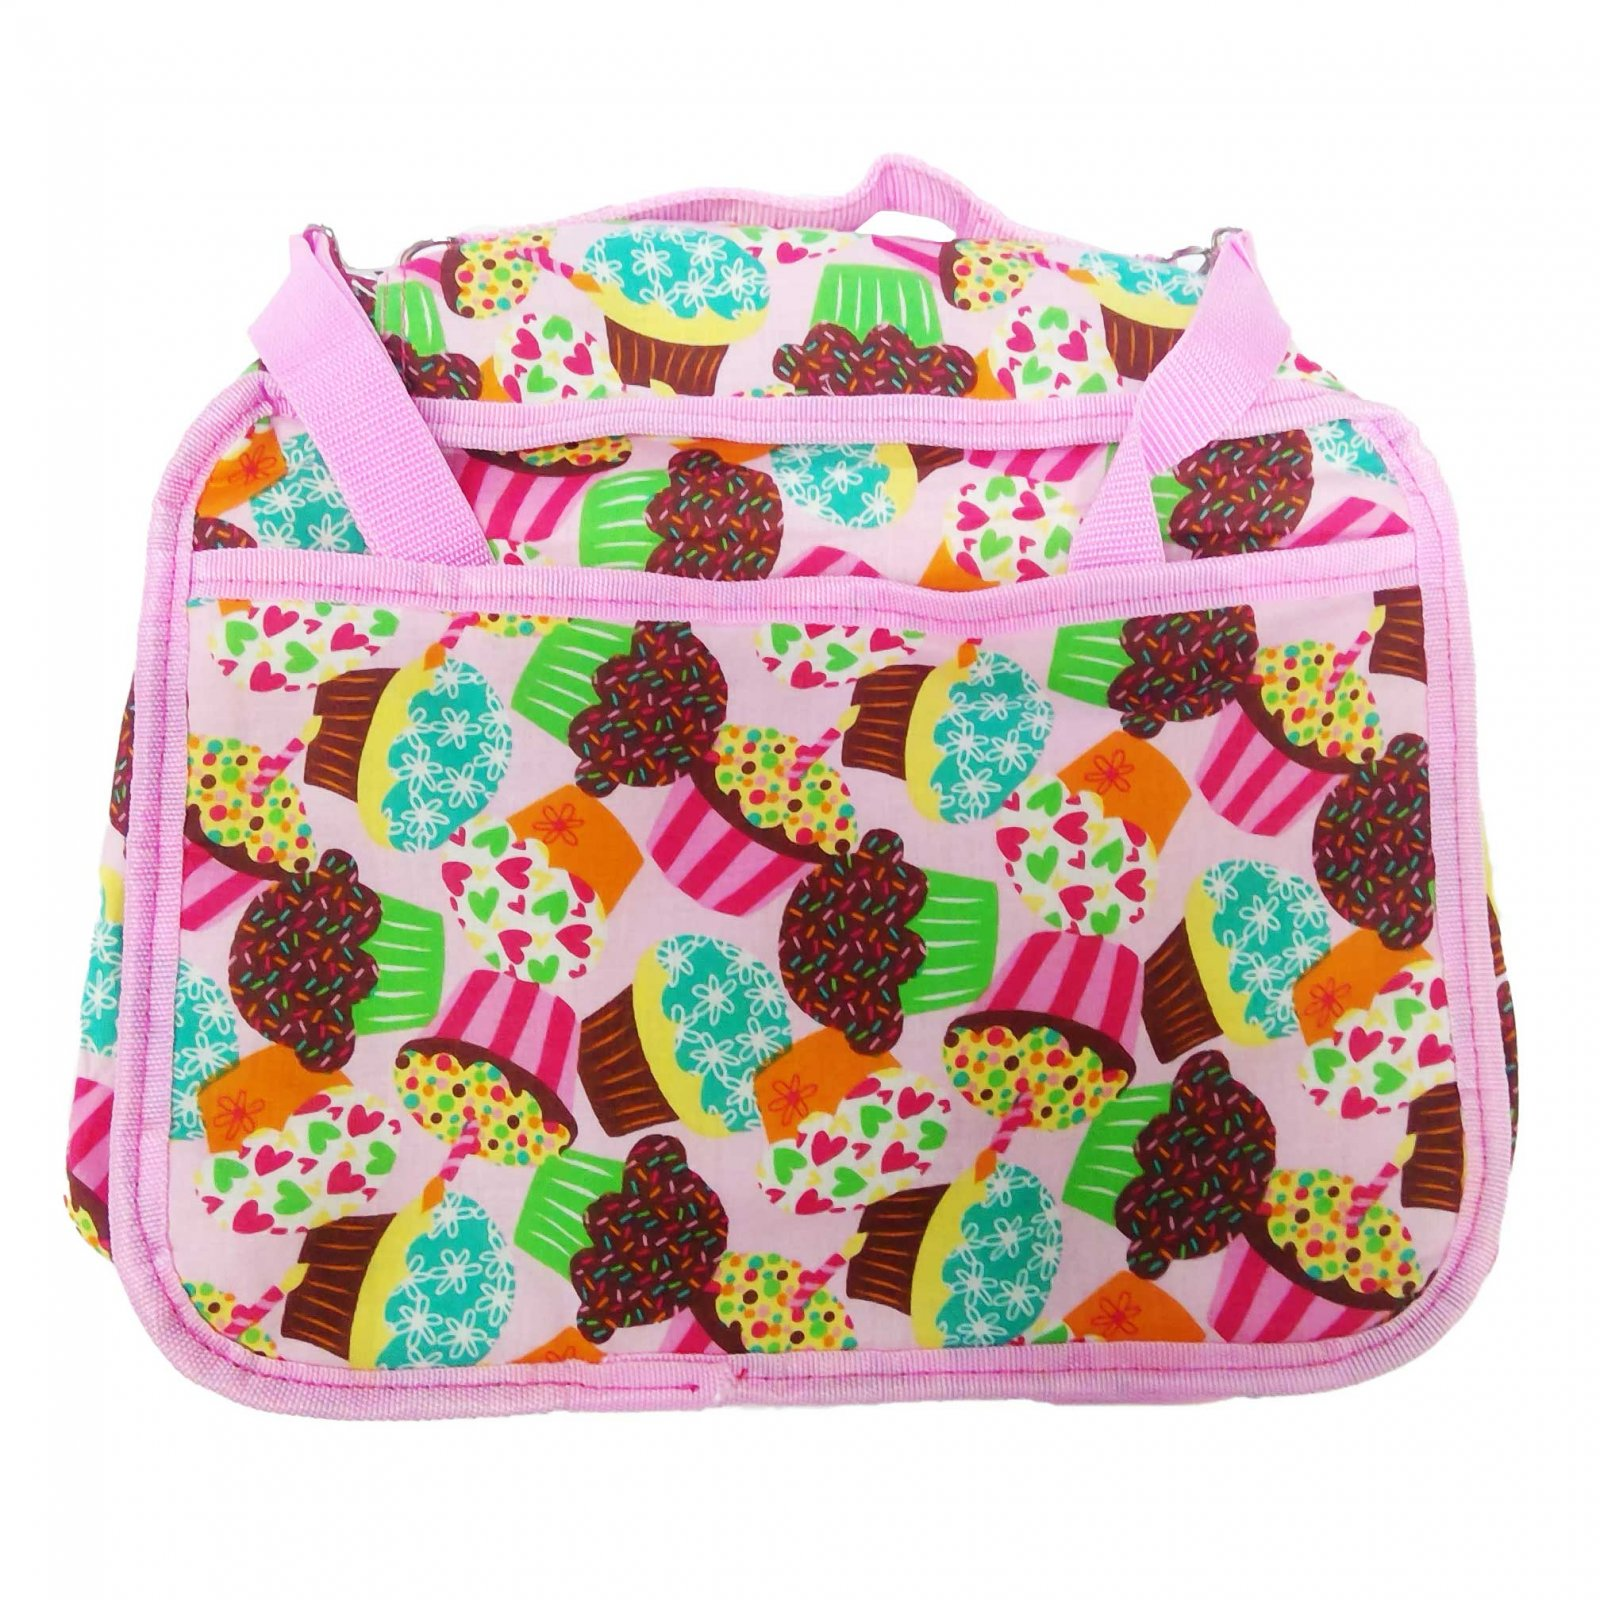 Vivace Craft Tote Cupcakes